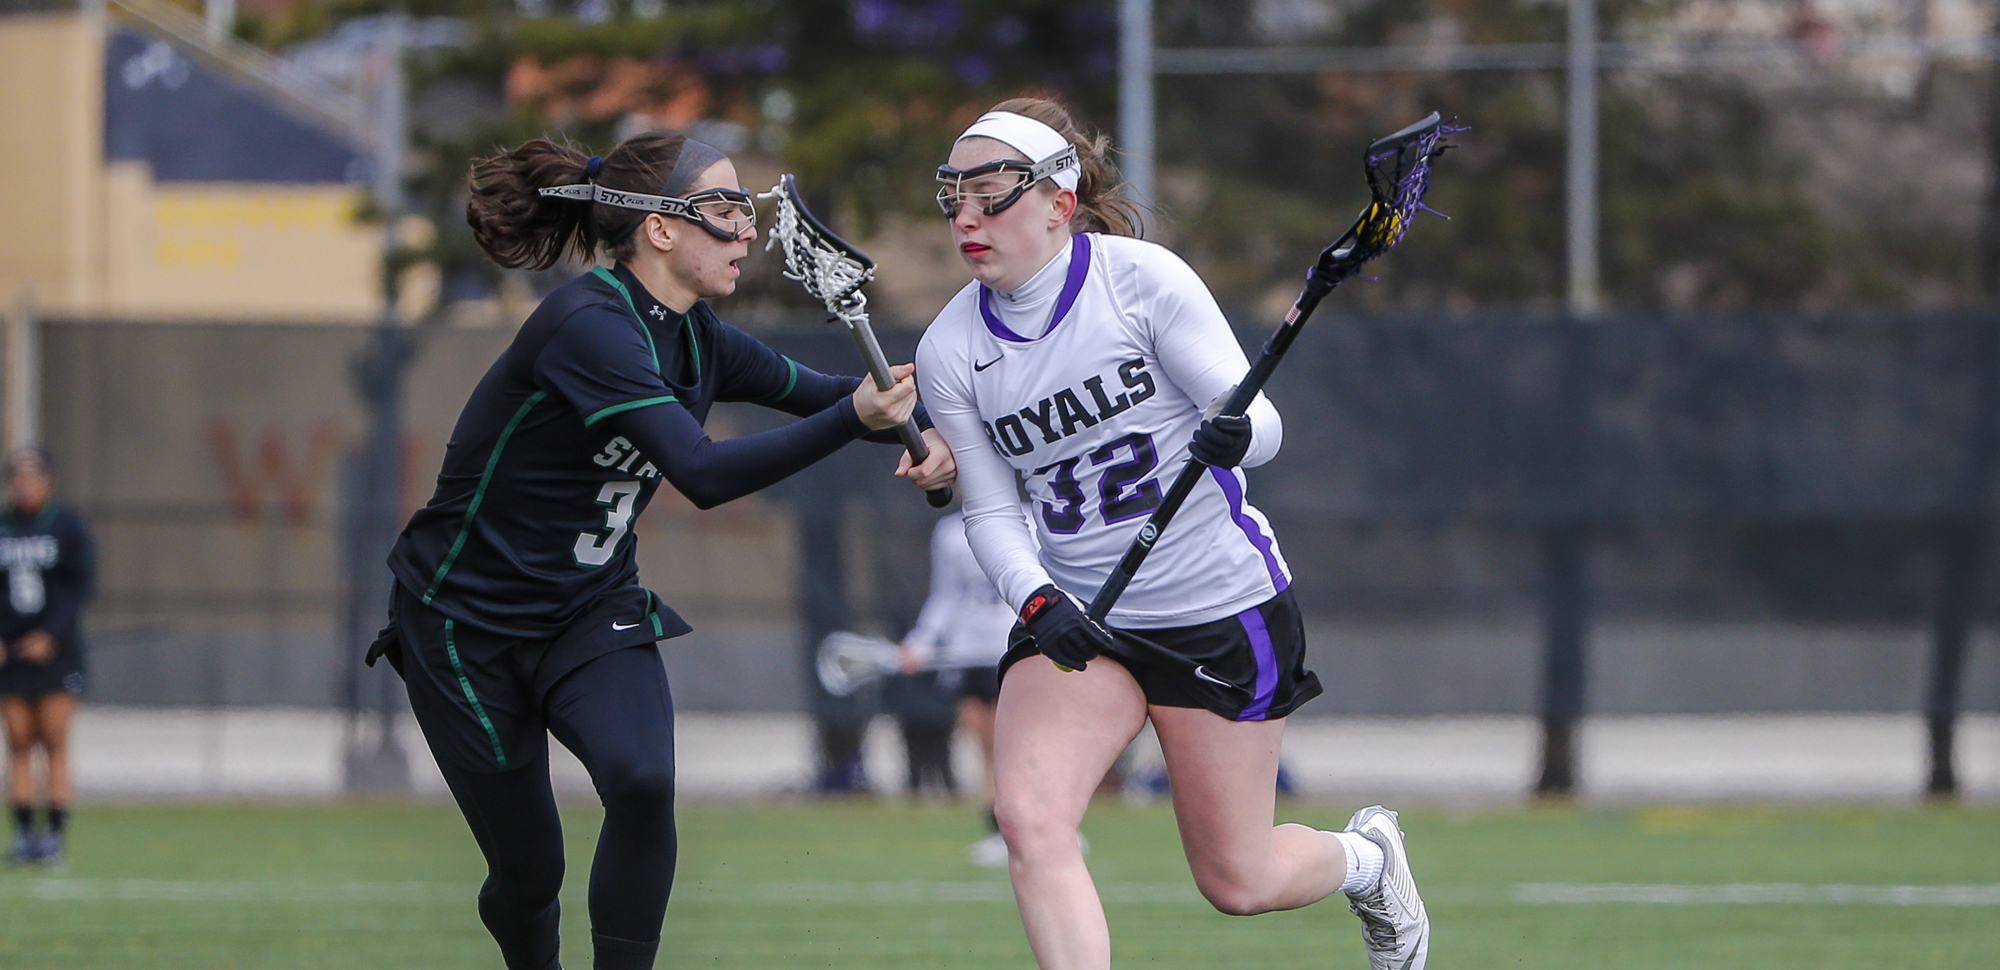 Sophomore Christine Olert scored two goals and added three assists, as the Scranton women's lacrosse team improved to 5-1 overall on the year with a 14-7 win over Marywood on Thursday evening.